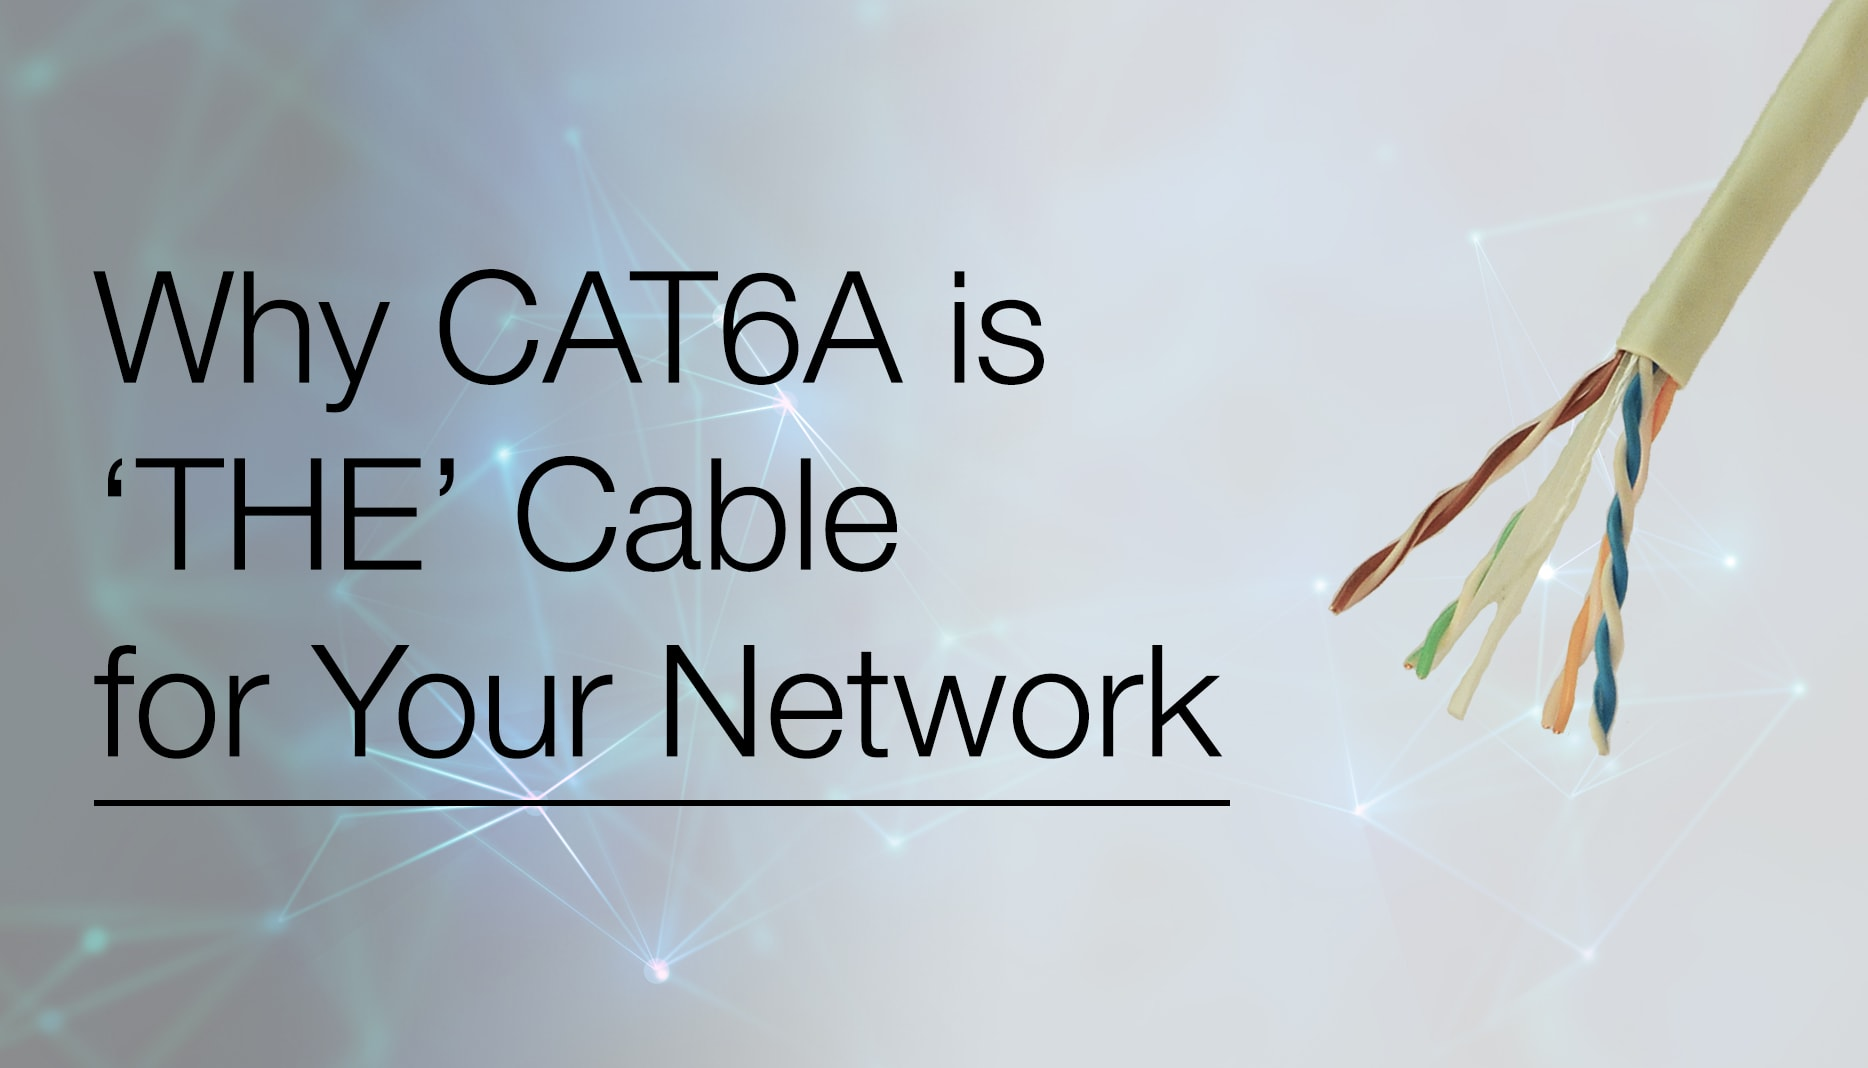 Why CAT6A is THE Cable for your Network